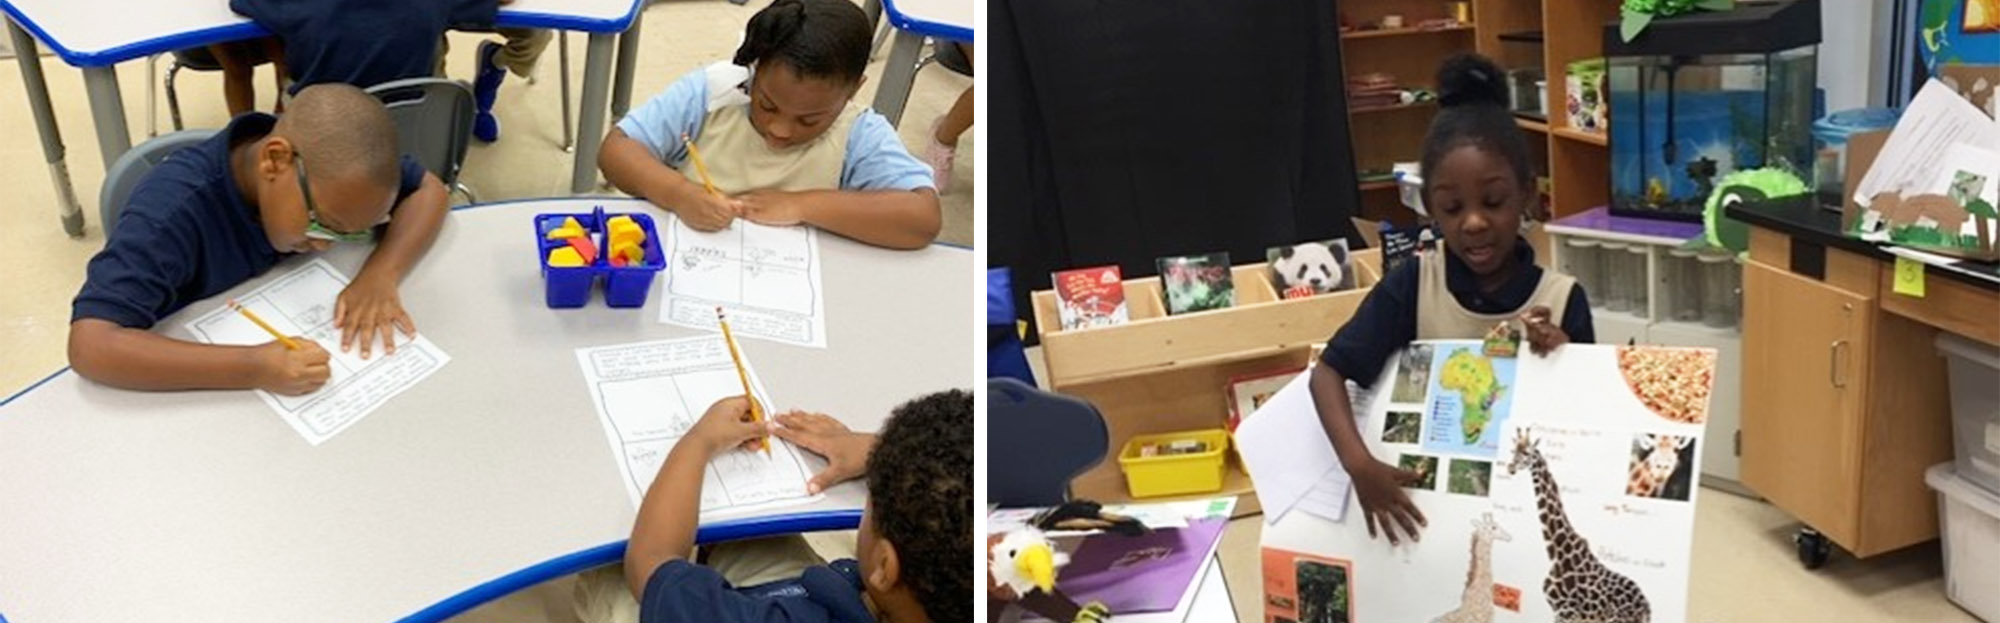 Students at desk with worksheets and student presenting giraffe poster